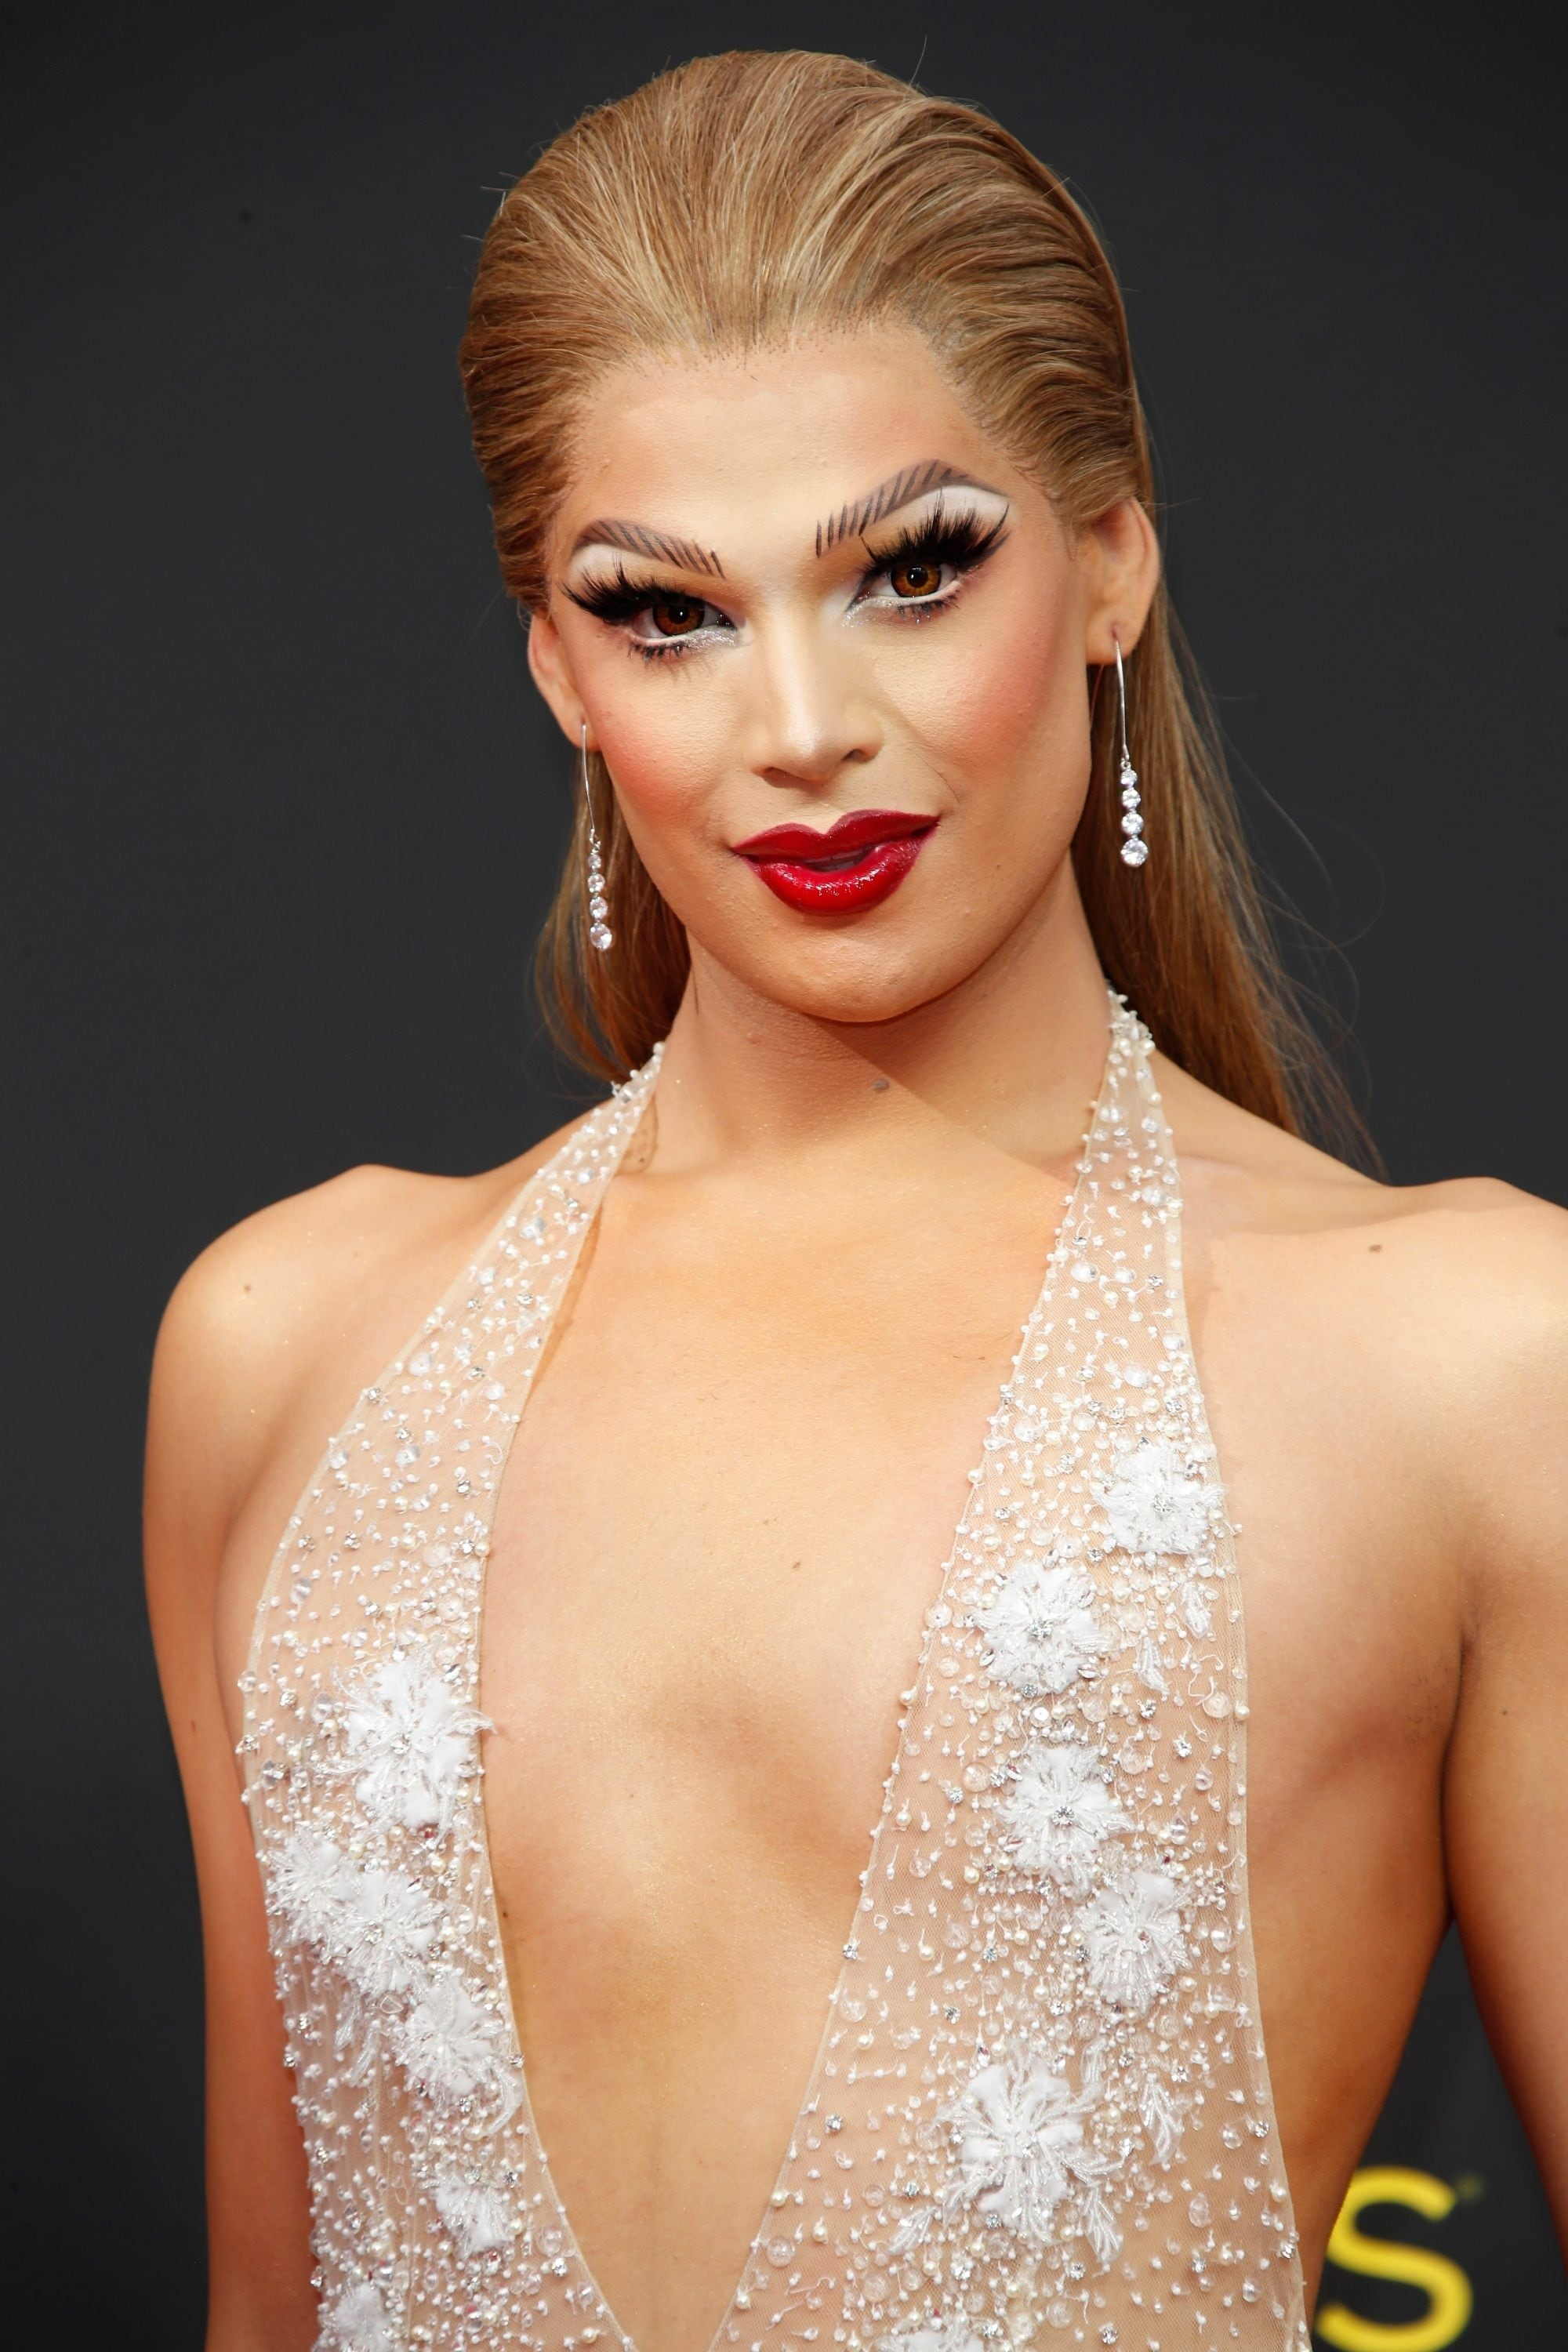 Emmy Awards 2019 Best Hairstyles: Valentina with her slicked back hair